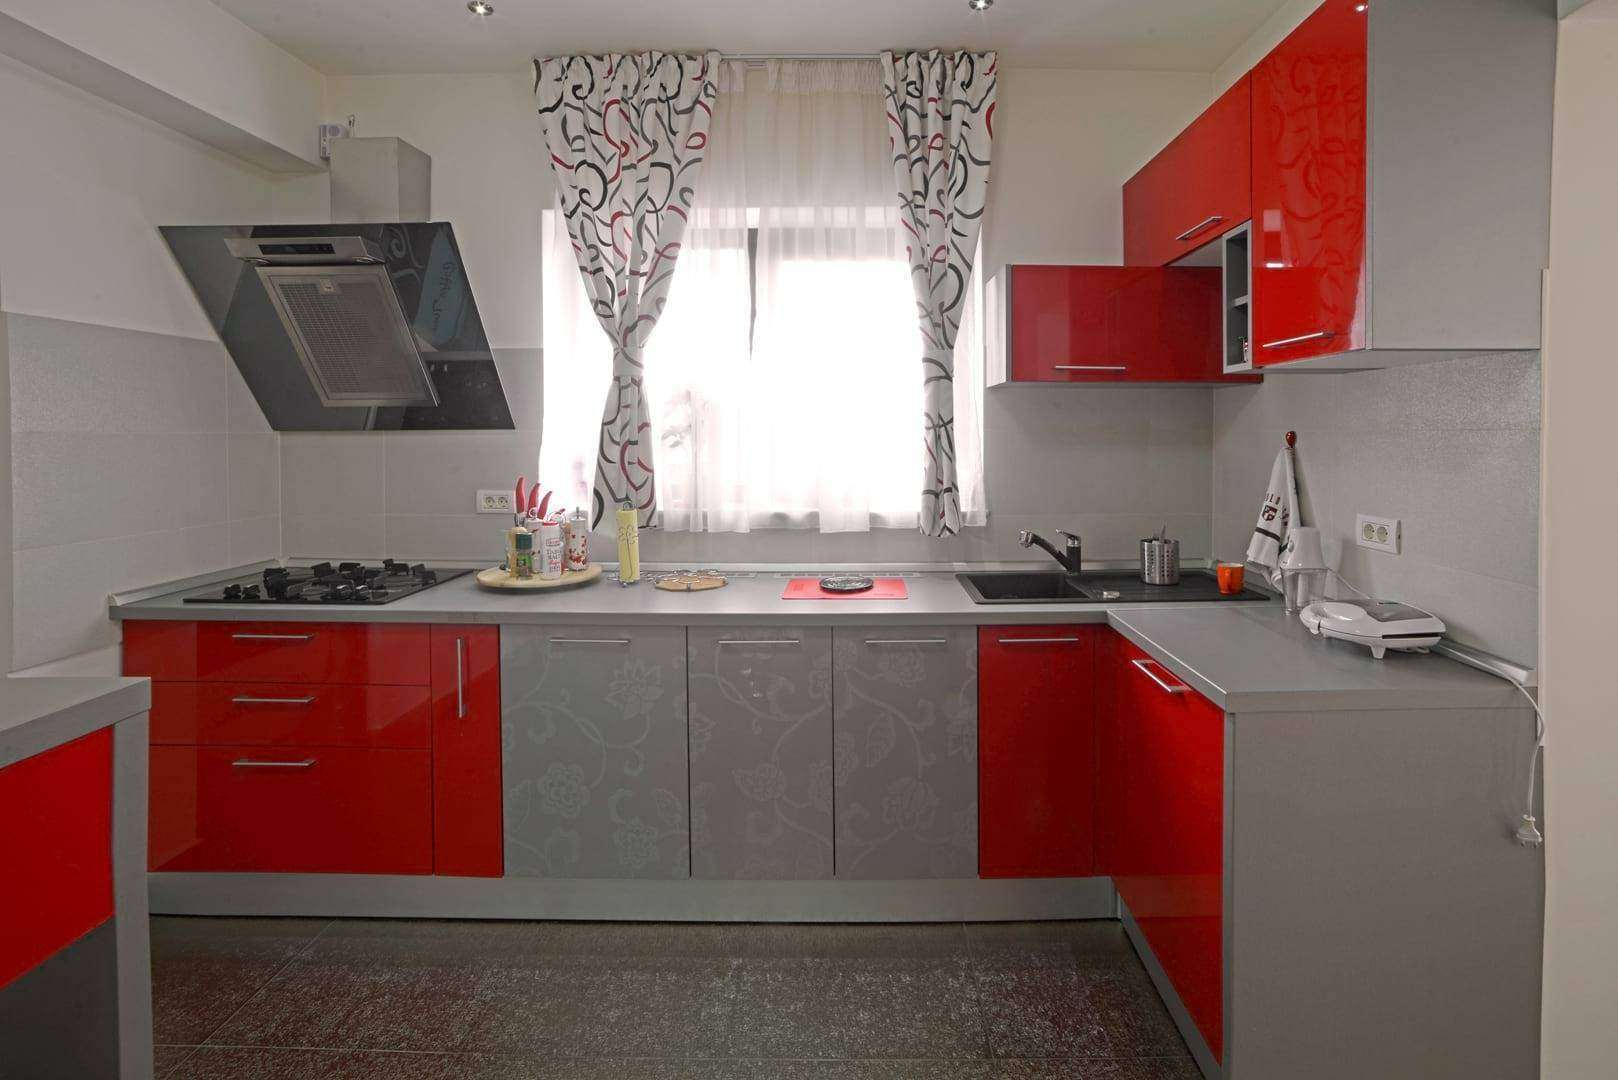 <a href=&quot;&quot;>mobila bucatarie Ramona 4<img src='http://www.unican.ro/wp-content/themes/vita/img/dreapta.png' class='pull-right hidden-xs' style='margin-right:-10px;margin-top:-10px; max-height:41px'></a>